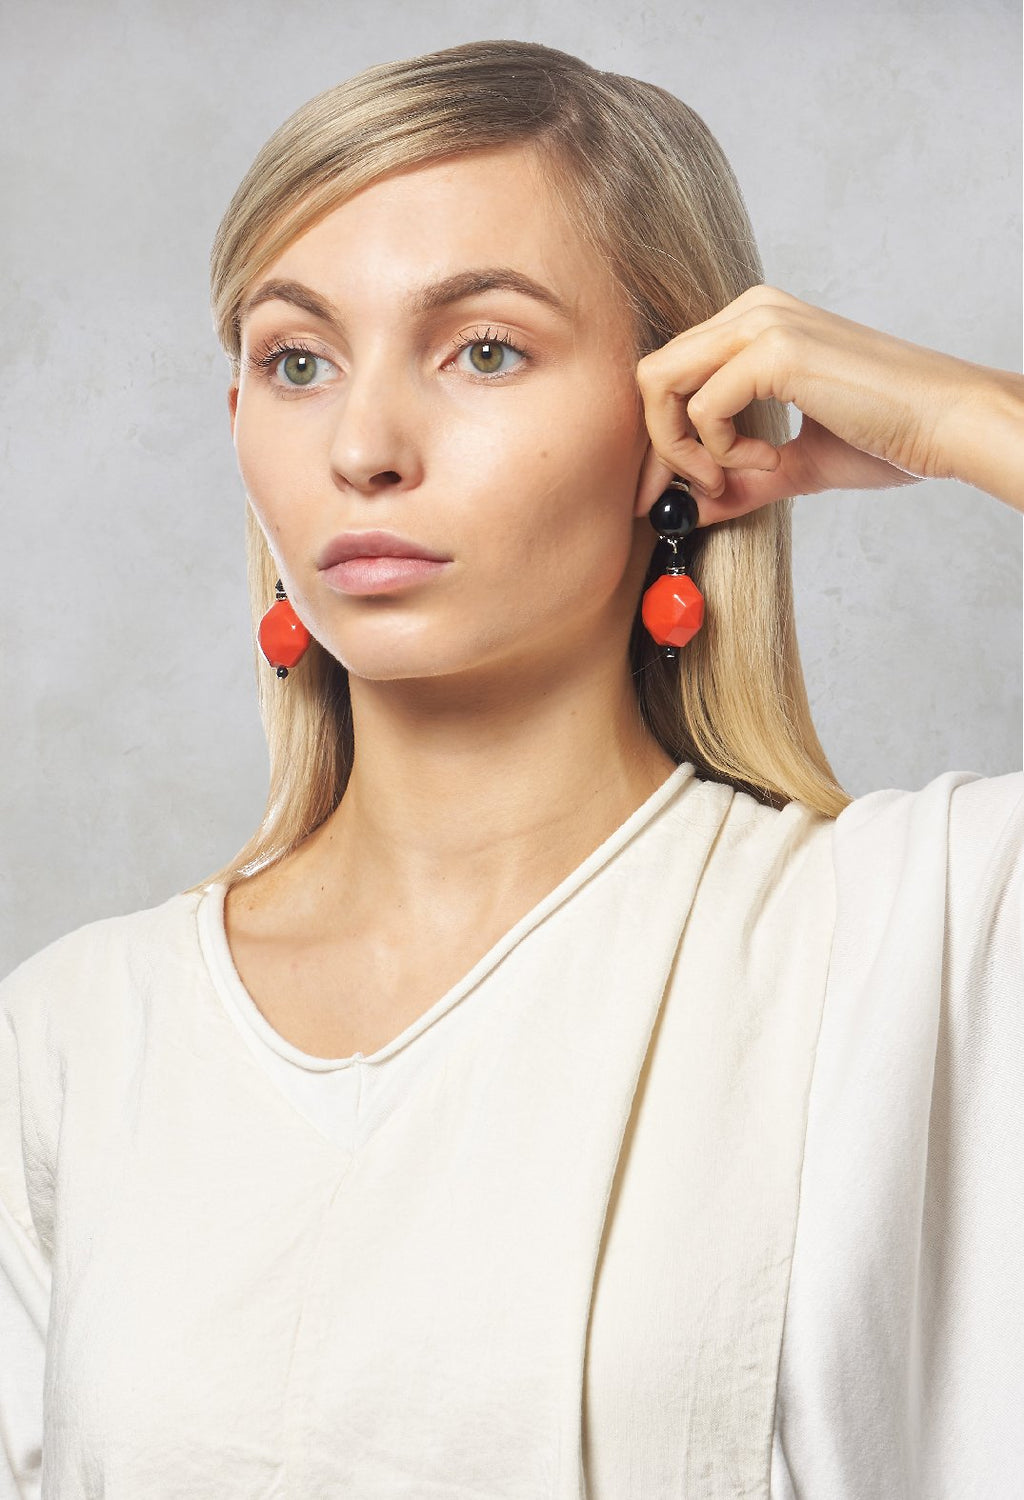 Penthagon Earrings in Coral / Black